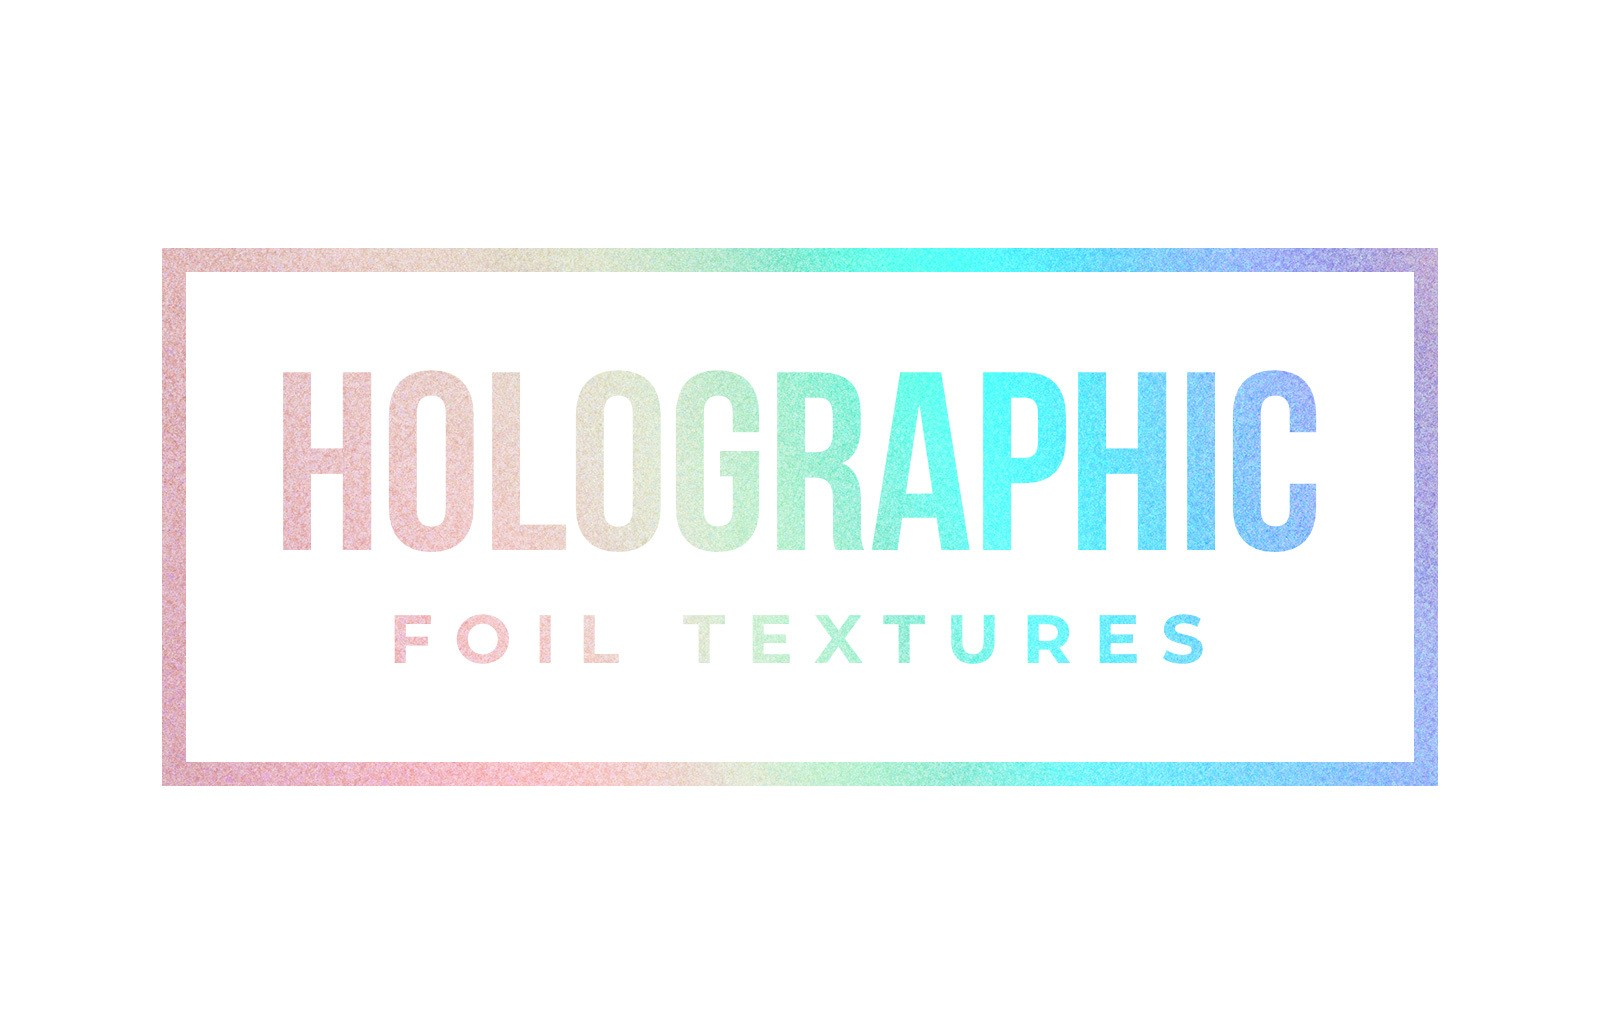 Holographic Foil Textures Preview 1